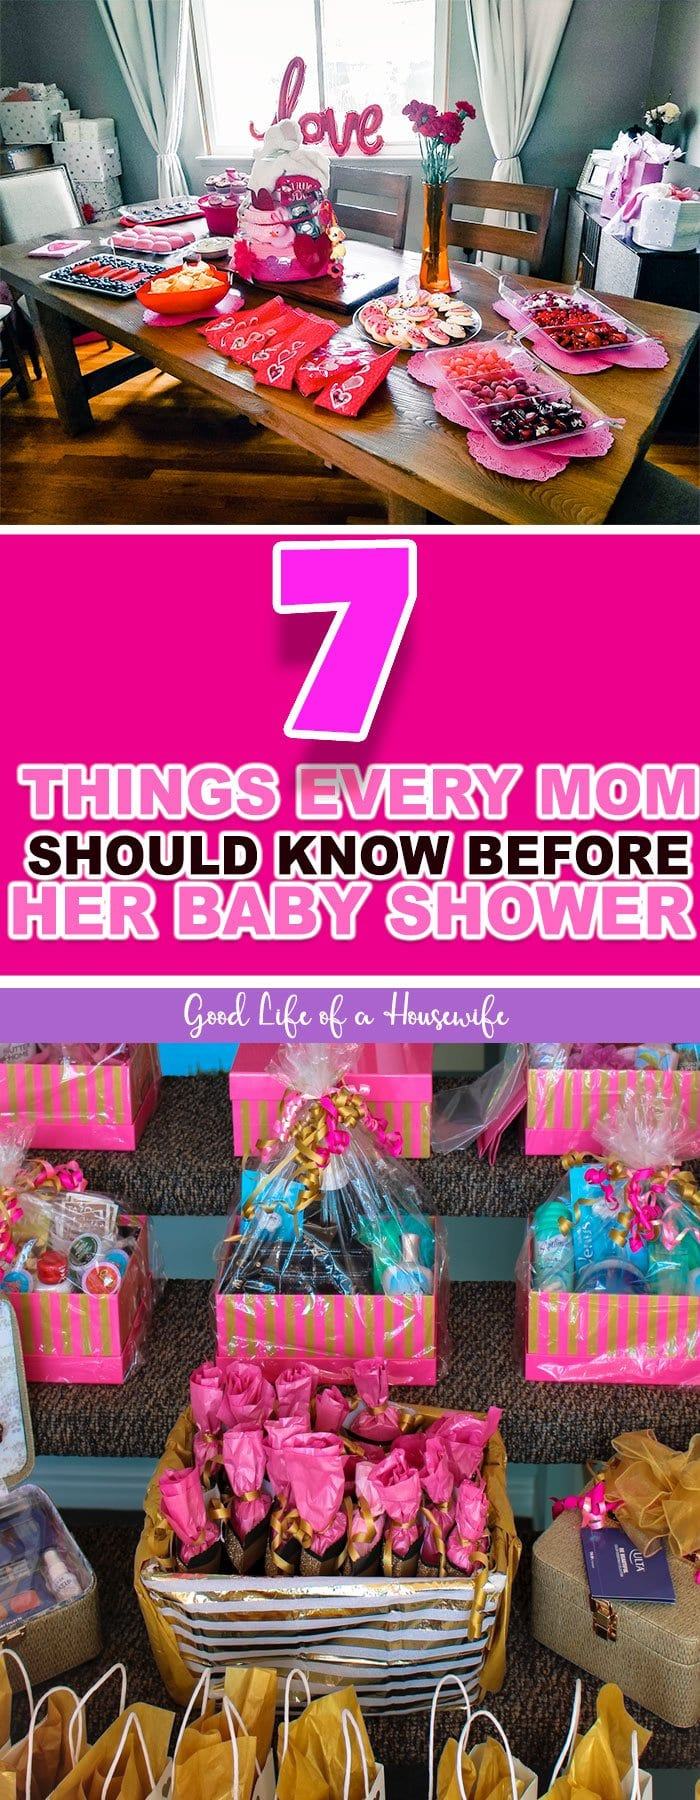 7 things every mom should know before her baby shower